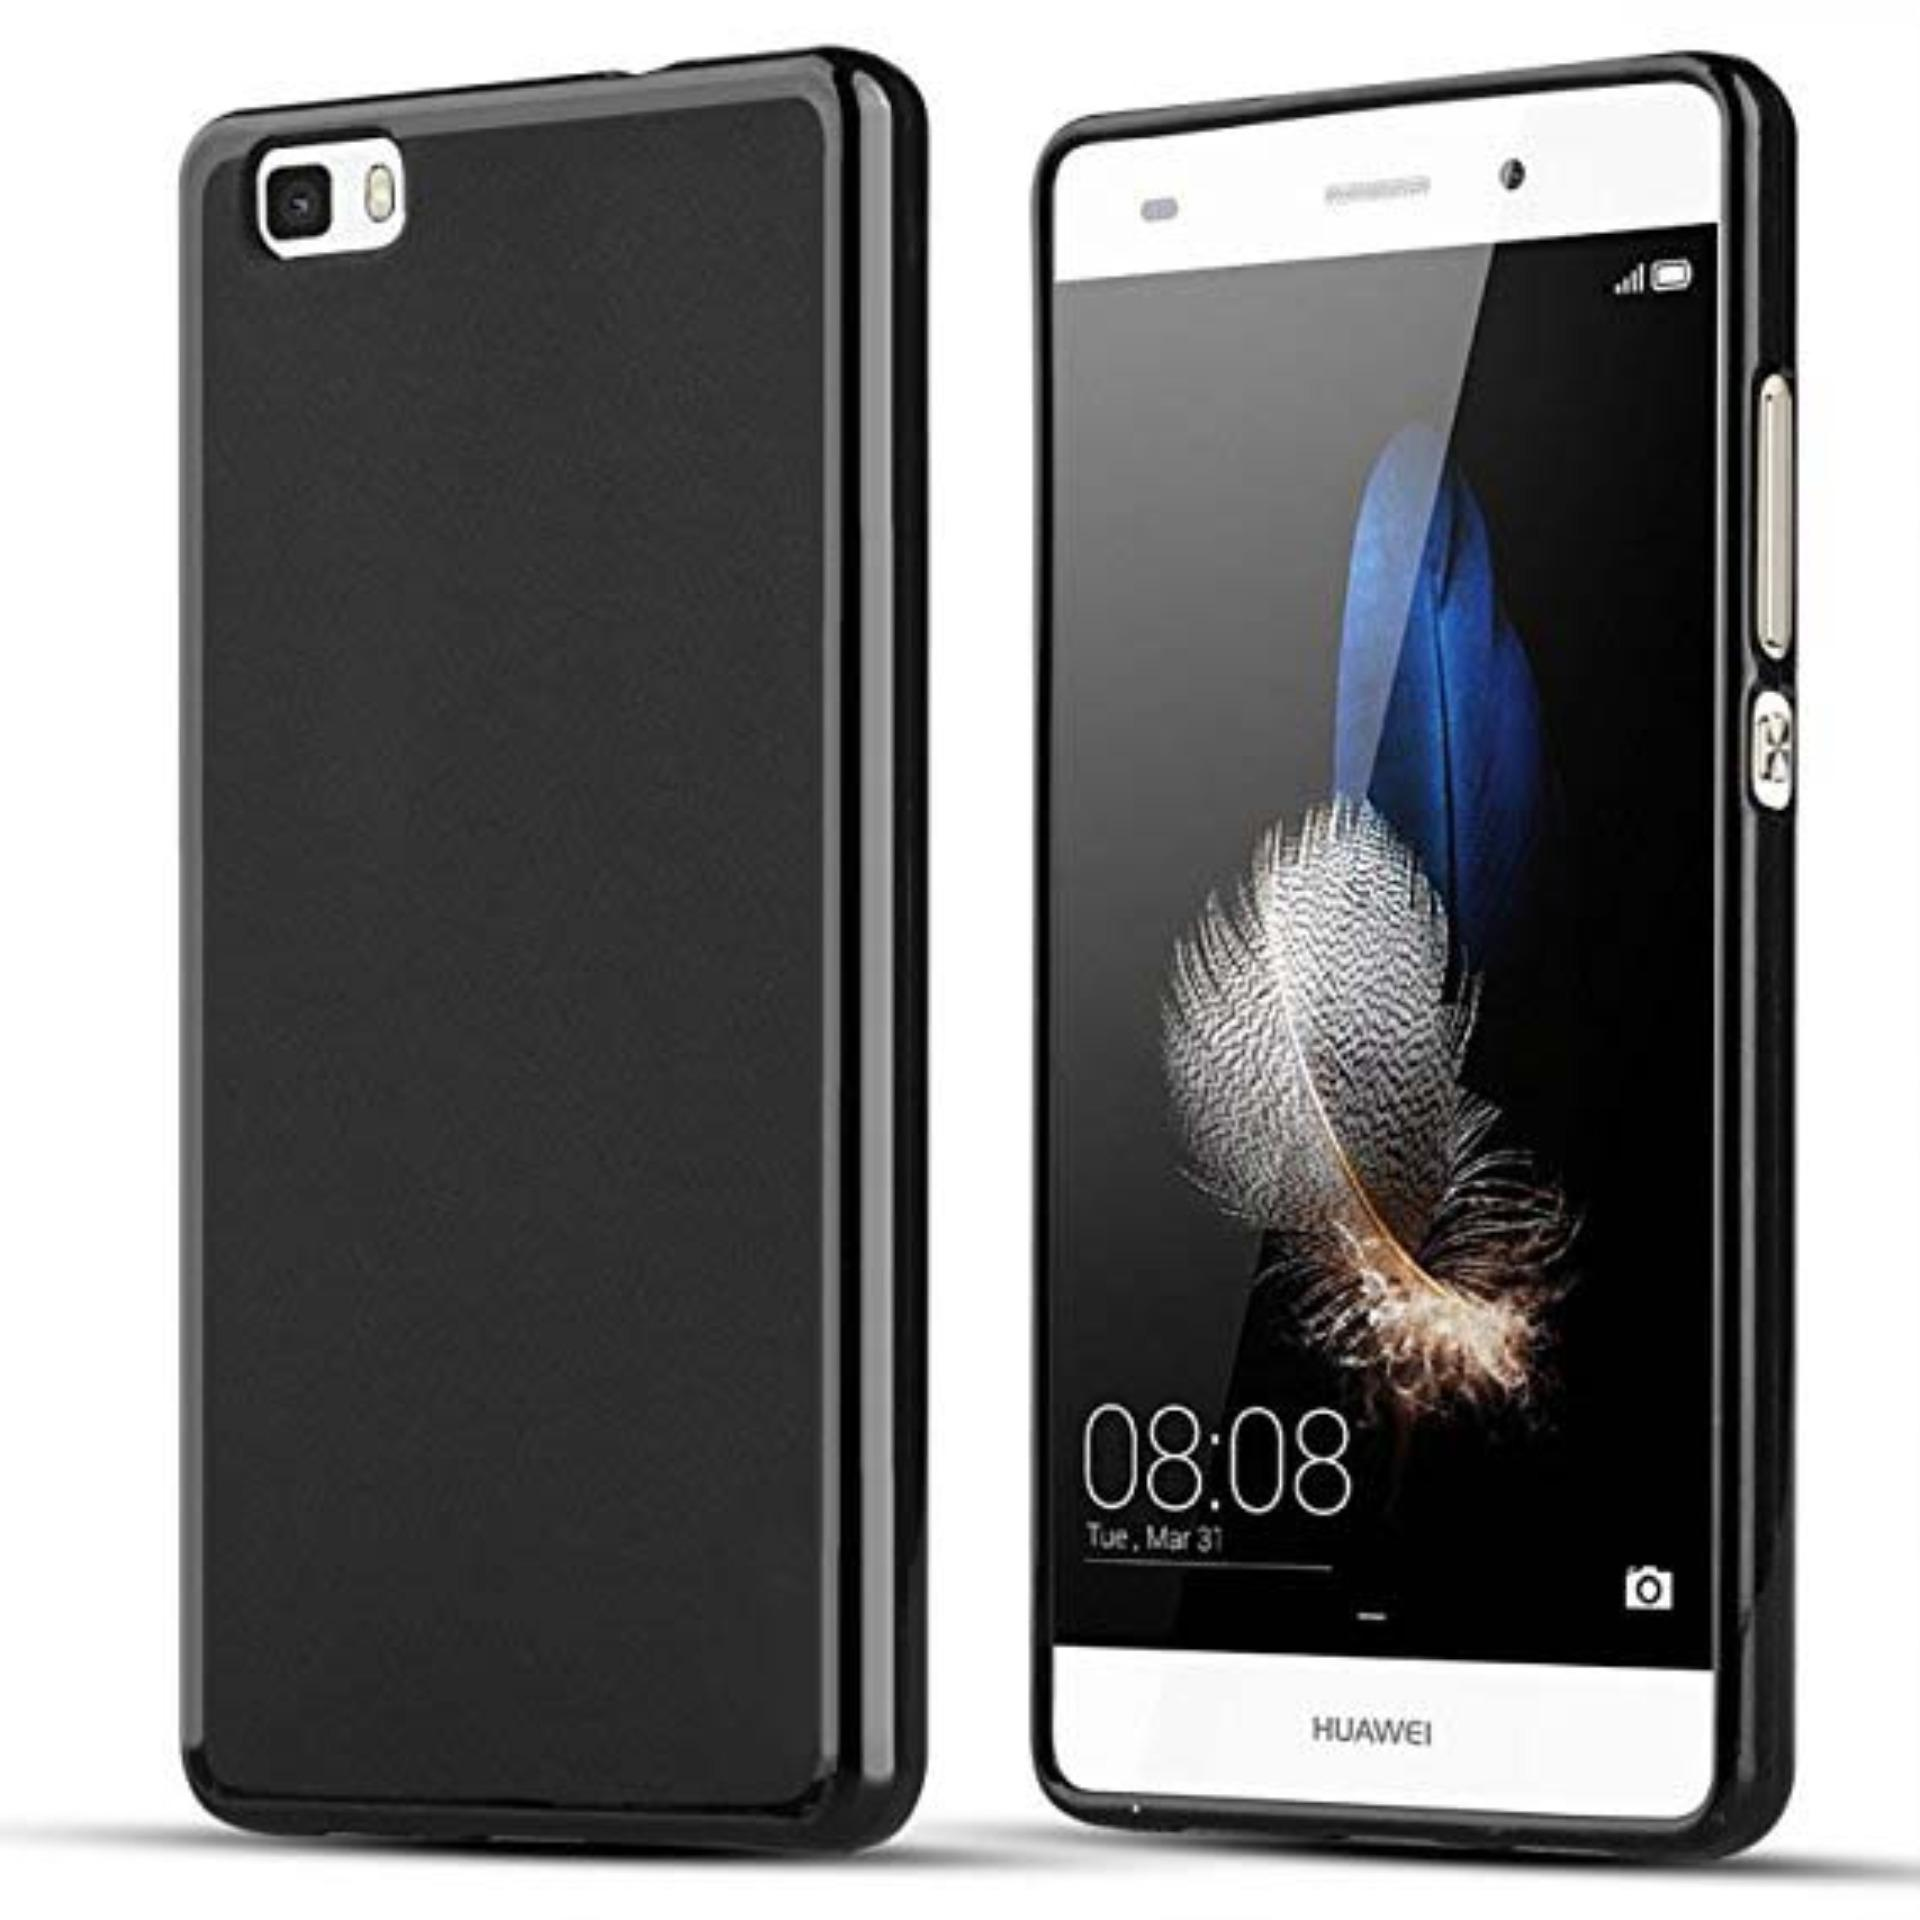 DarkNight for Huawei Ascend P8 Lite / Dual / LTE | Slim Case Black Matte Softcase Premium (Anti Min